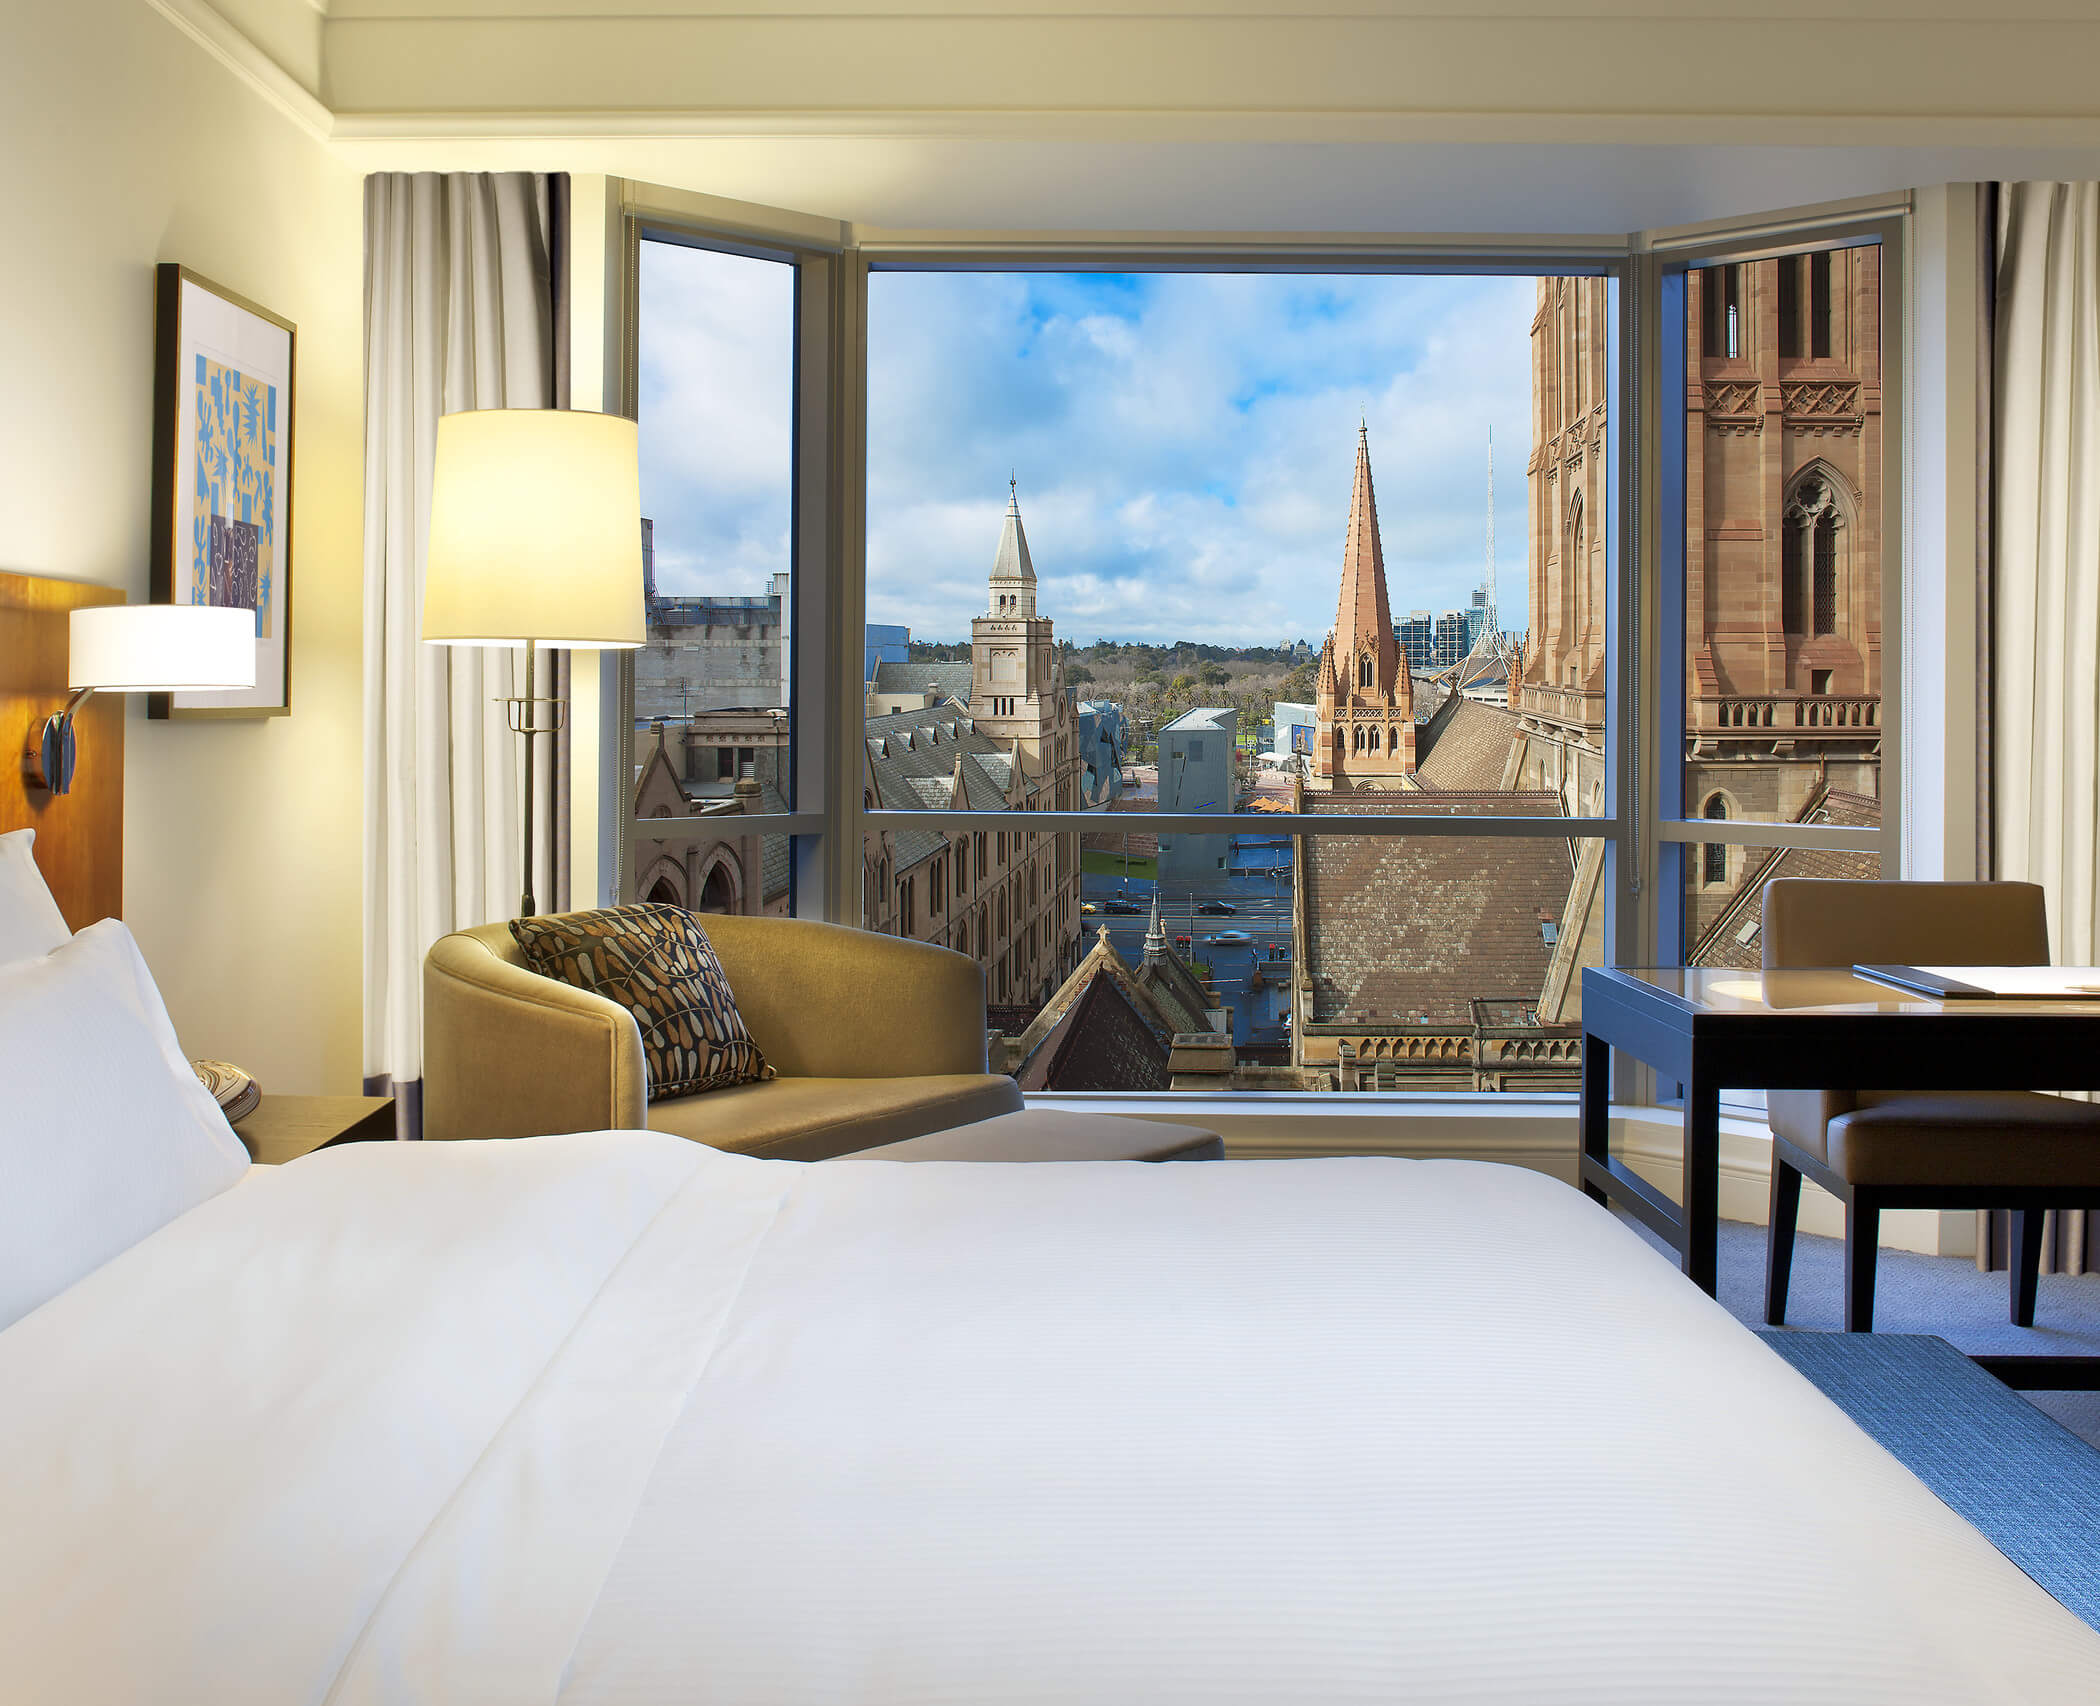 The Westin premium suite with amazing views of the Melbourne city